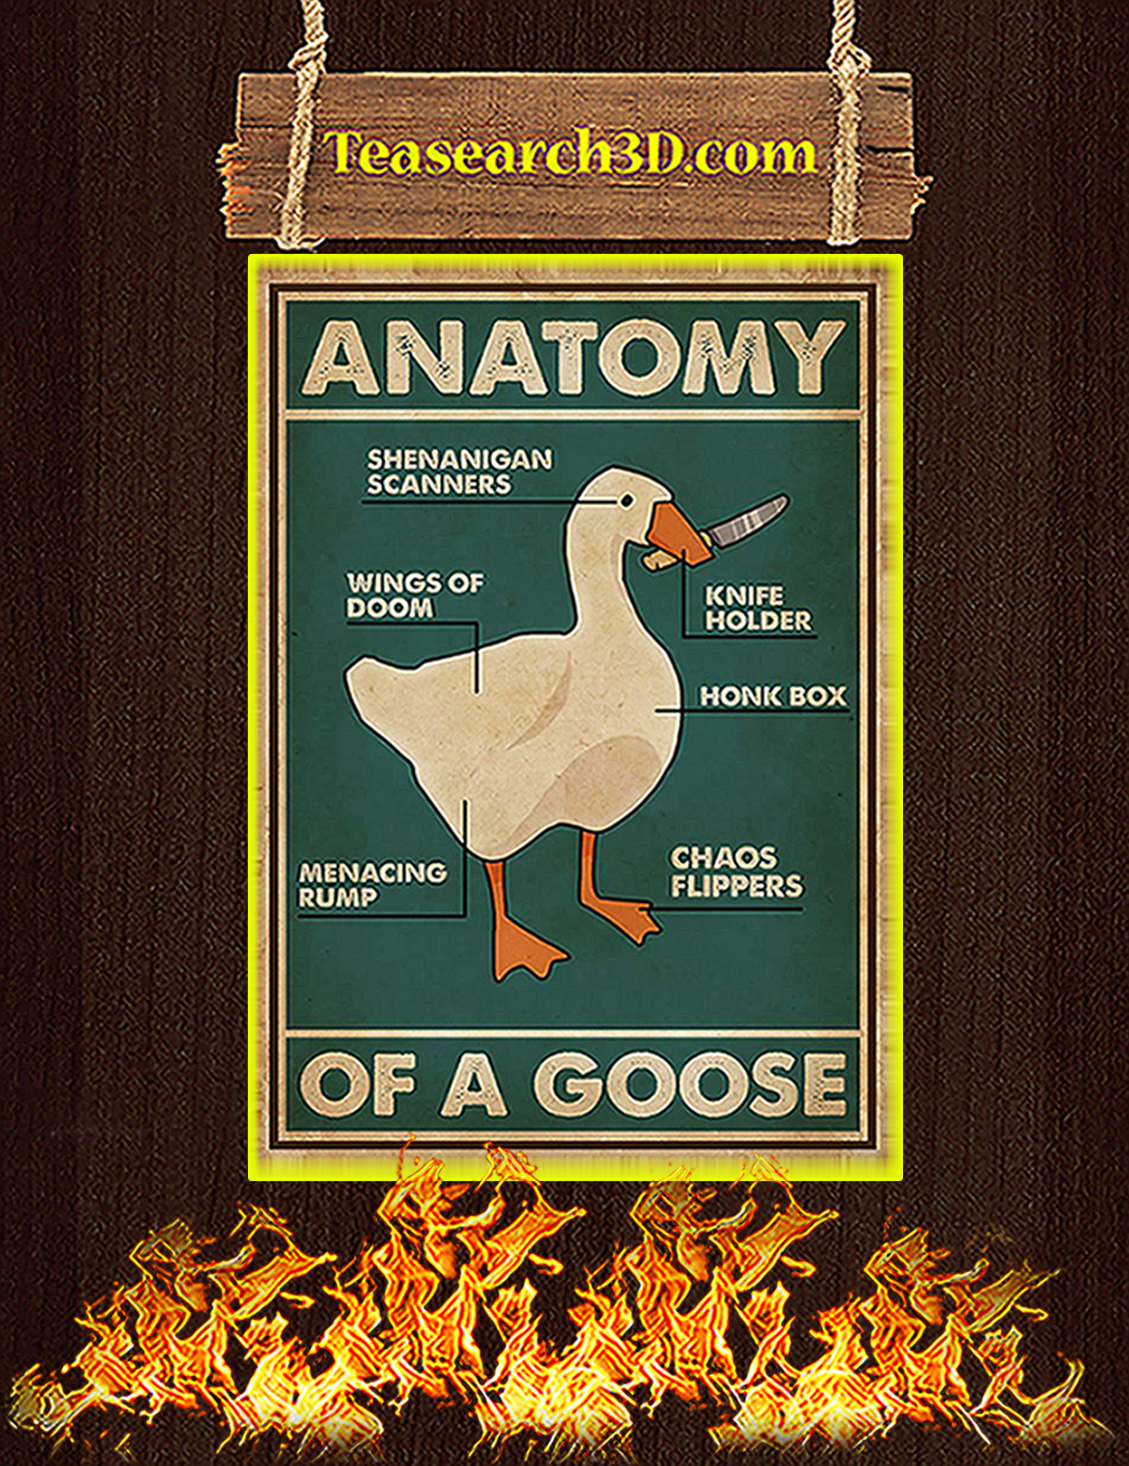 Anatomy of a goose poster A3